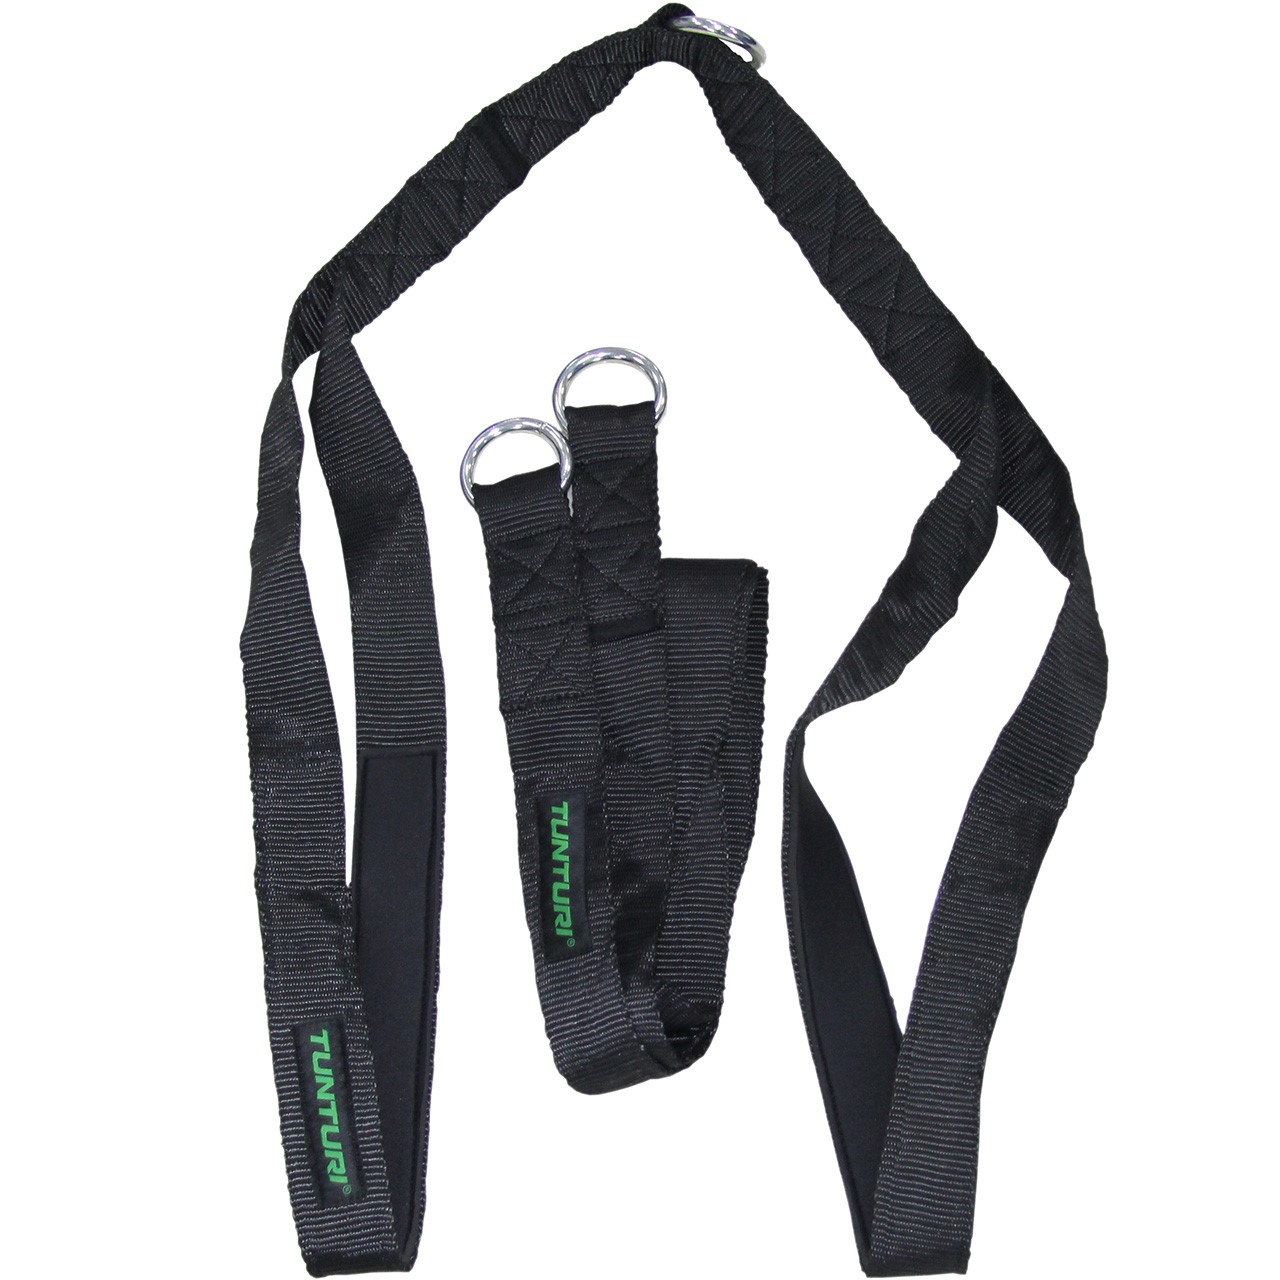 Tunturi Prowler Sled Shoulder Harness